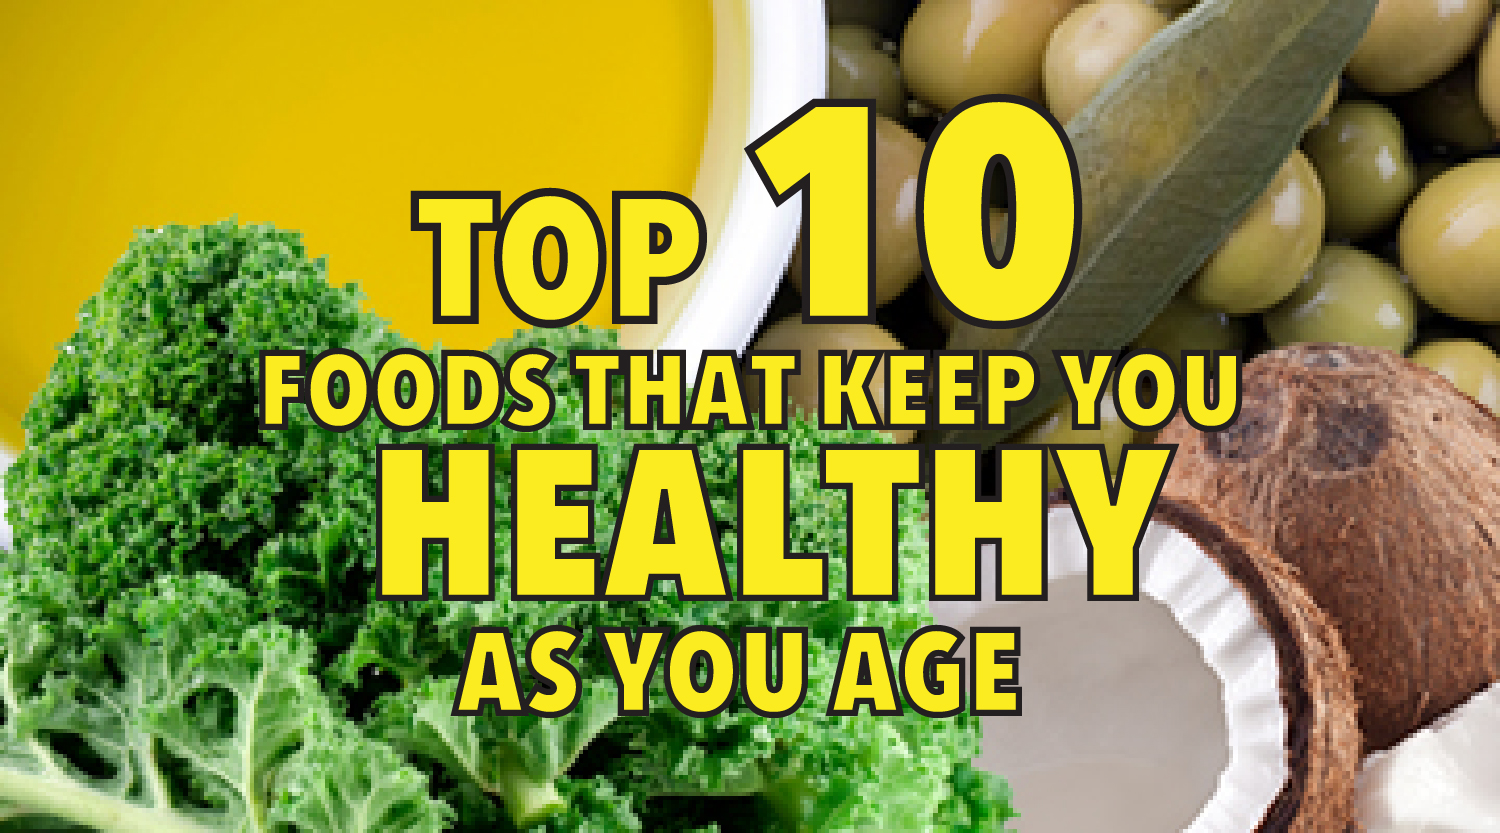 Top 10 Foods that Keep You Healthy As You Age